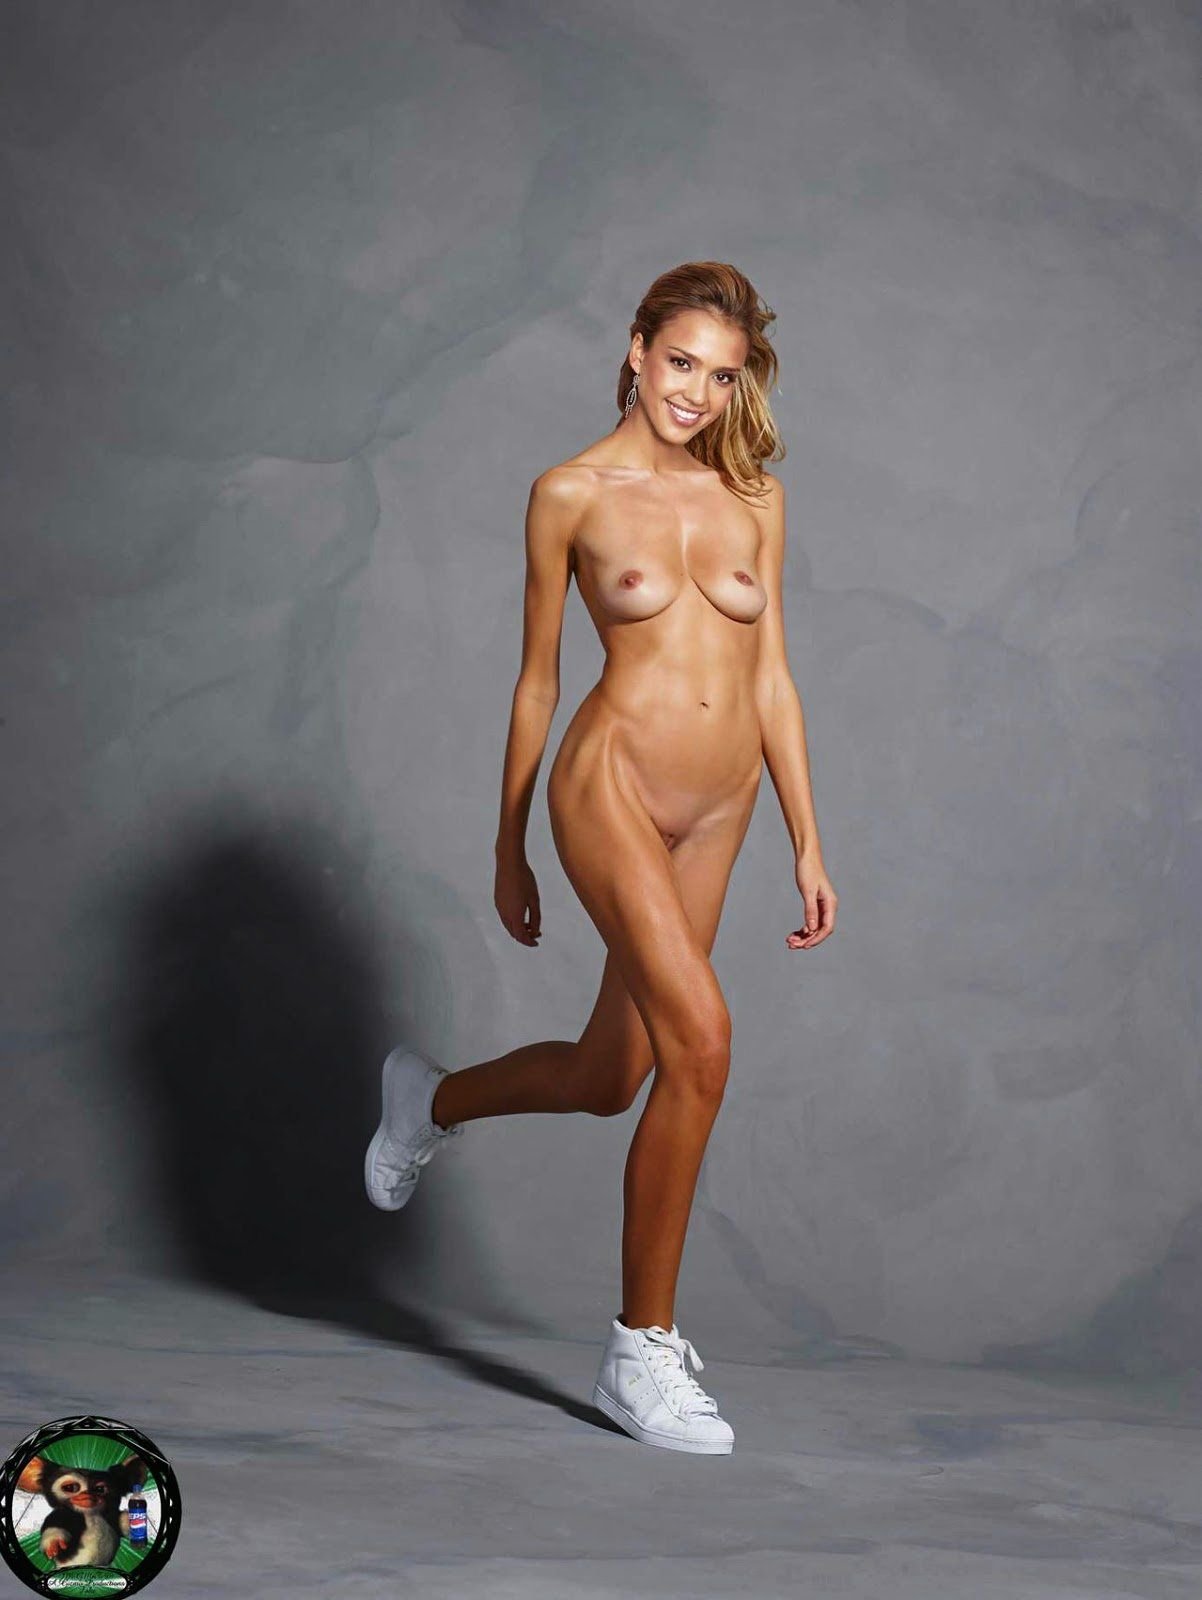 Jessica alba completely nude pictures porn galleries